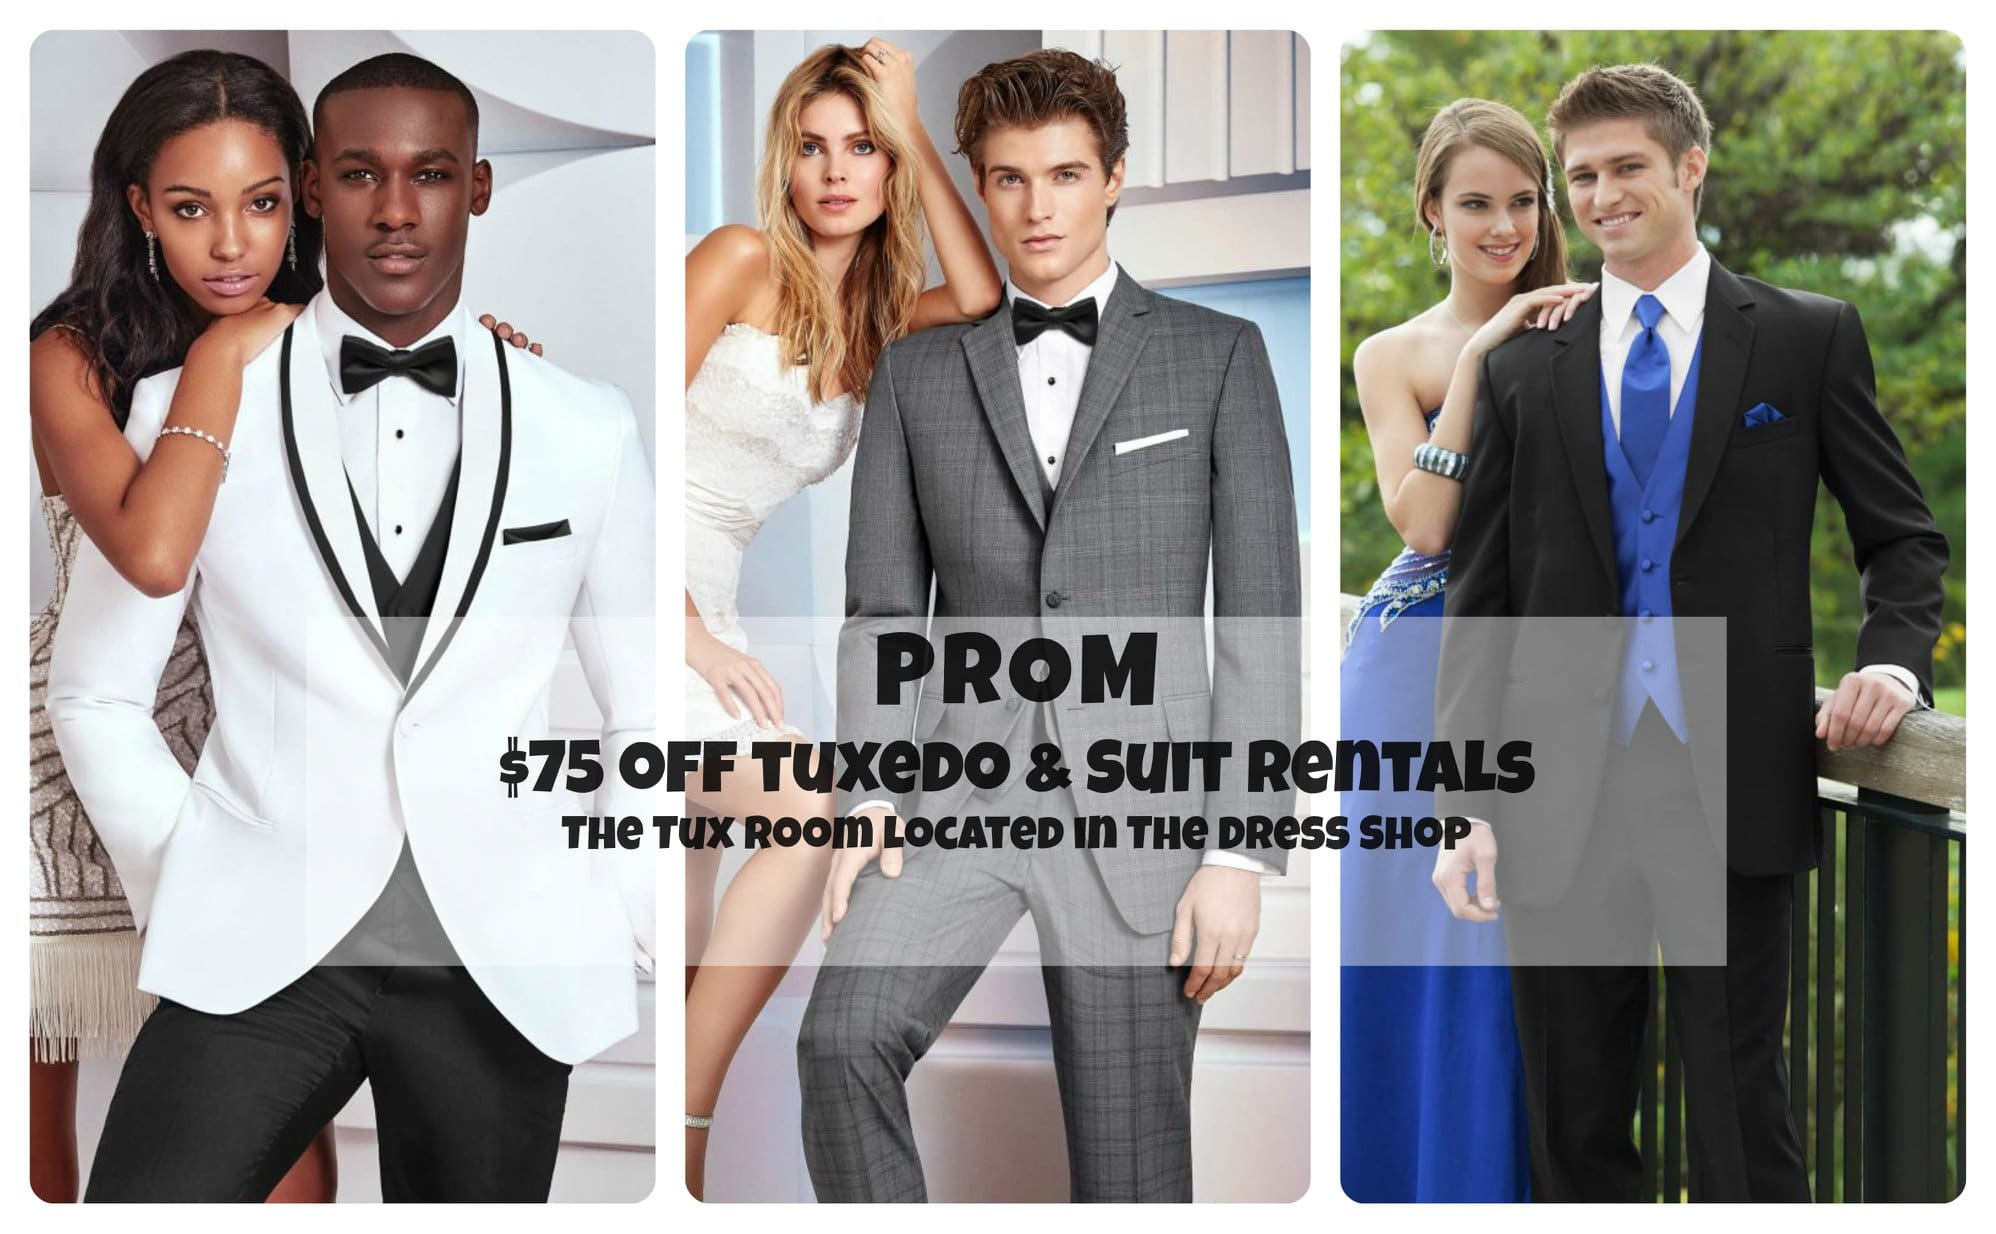 The Dress Shop Featuring The Tux Room Prom Special